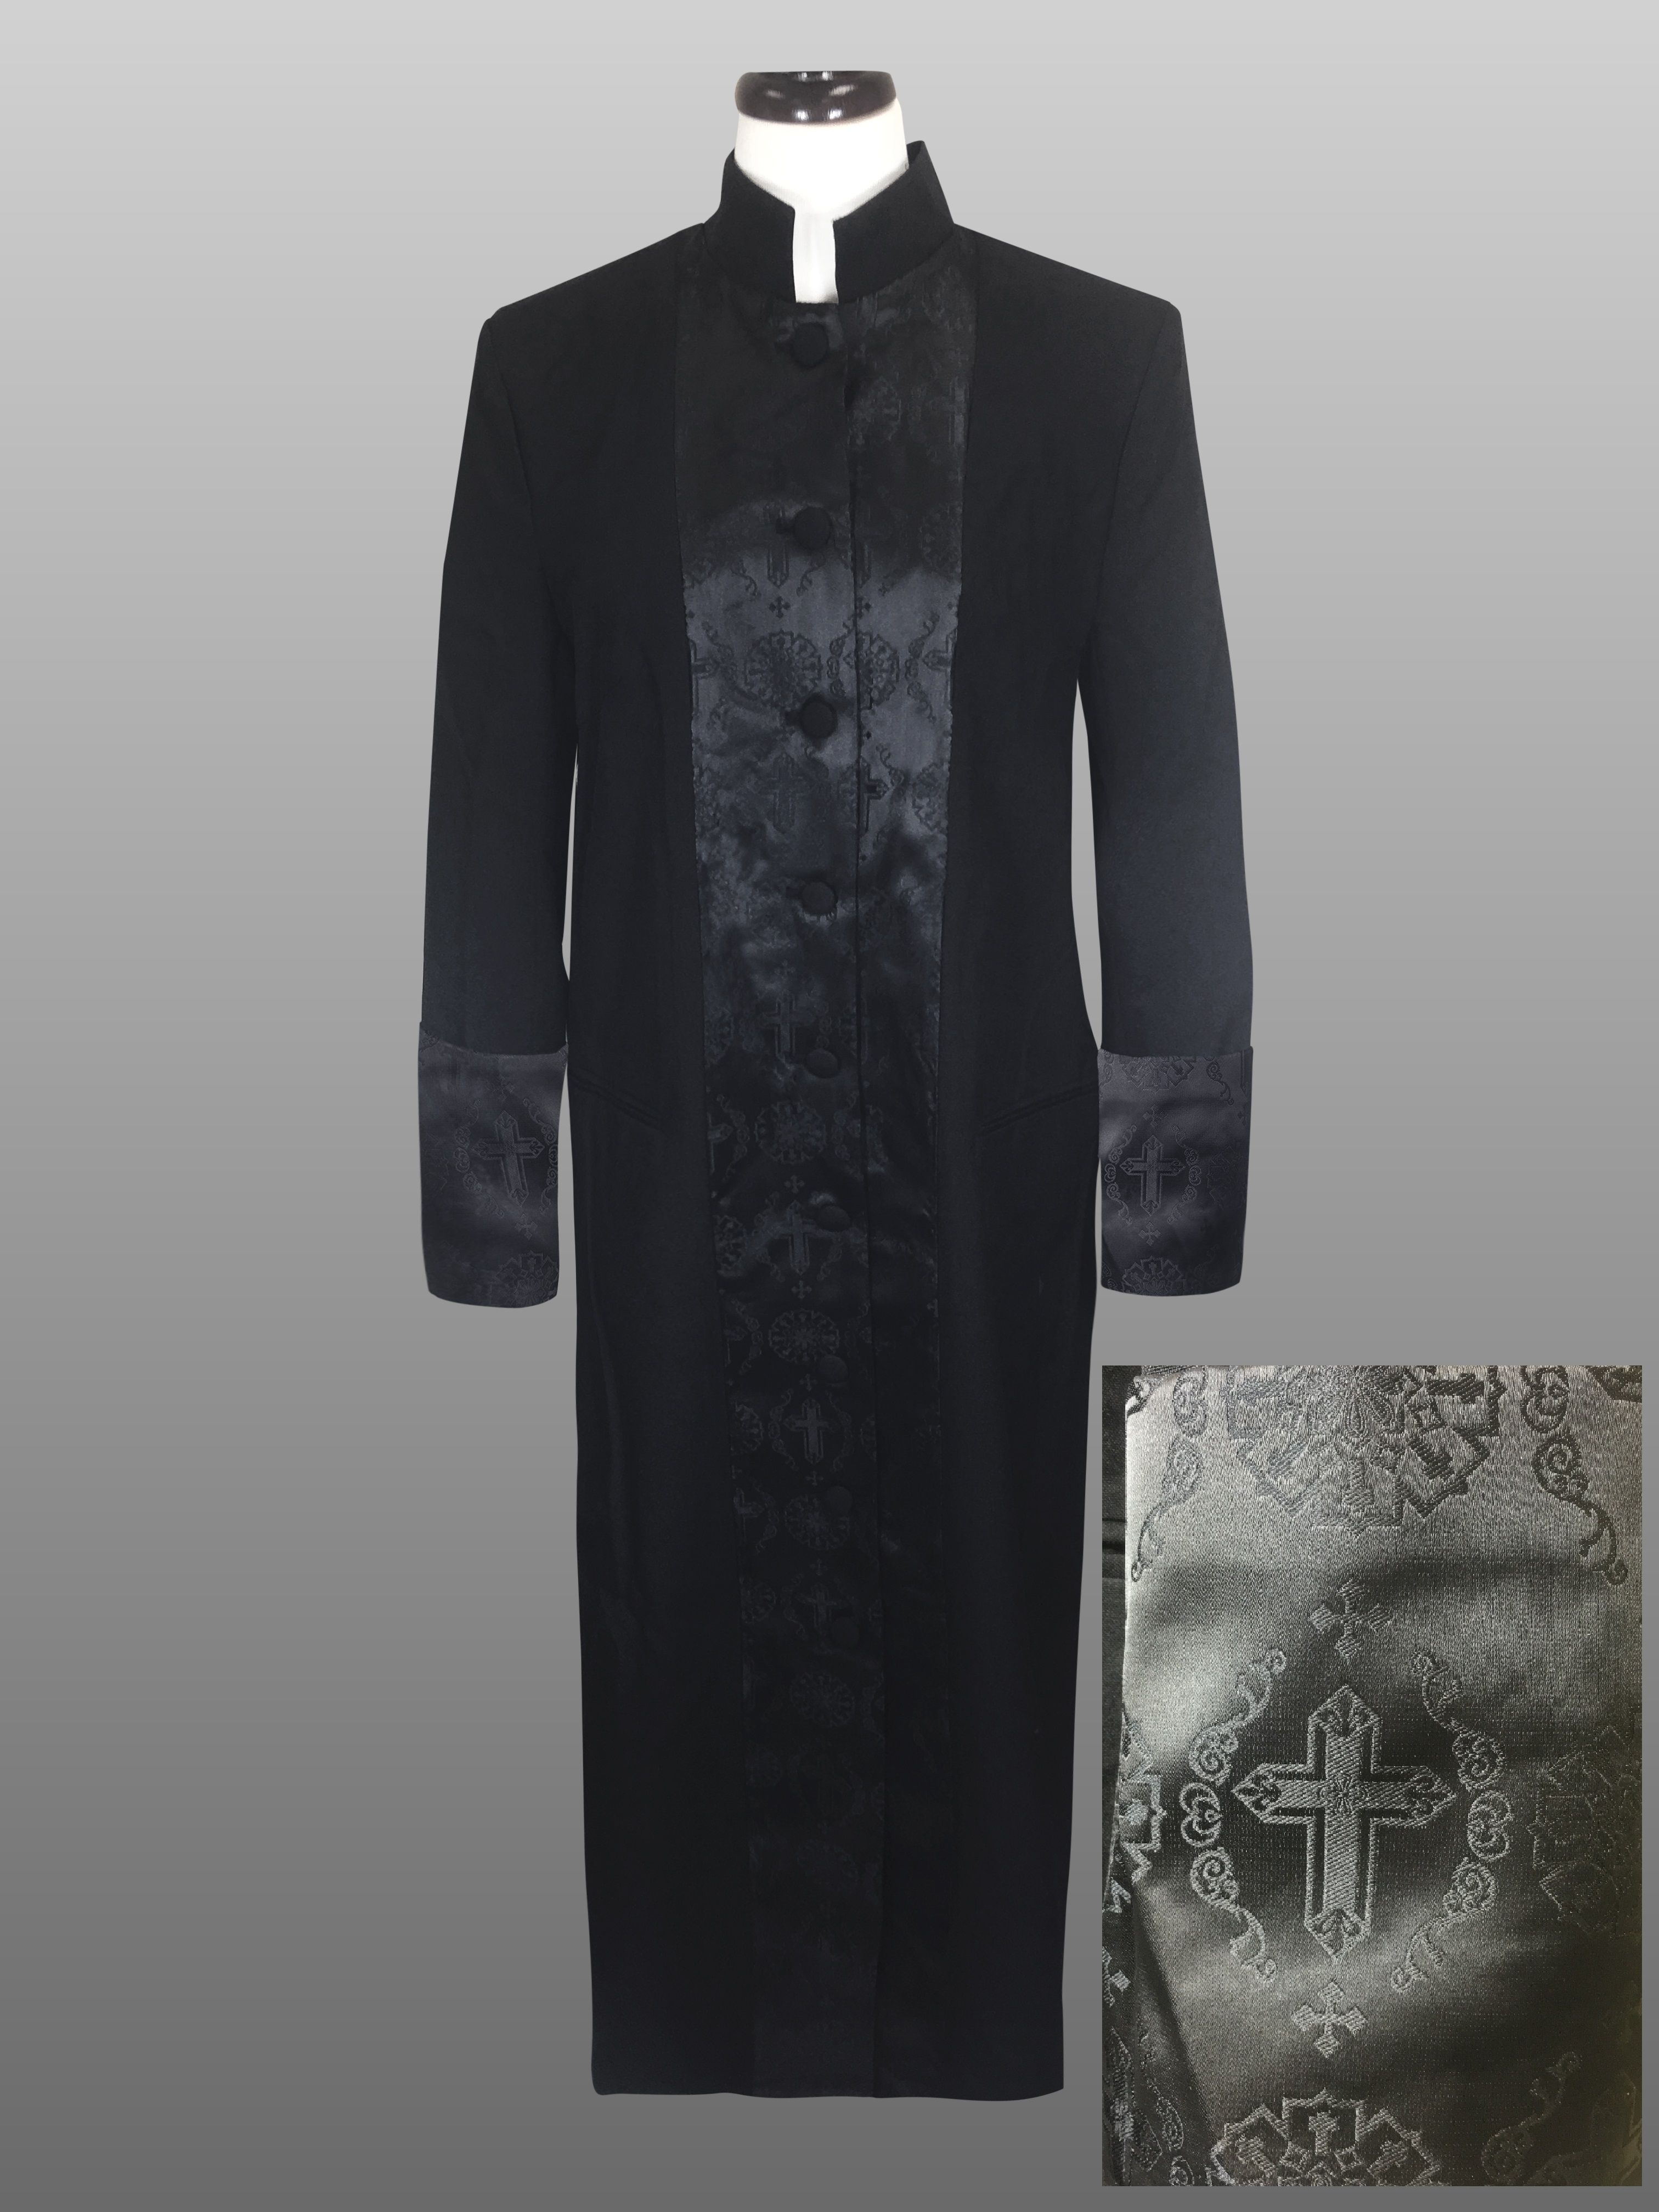 816 W. Women's Double Tone Brocade Pastor/Clergy Robe Black/Black